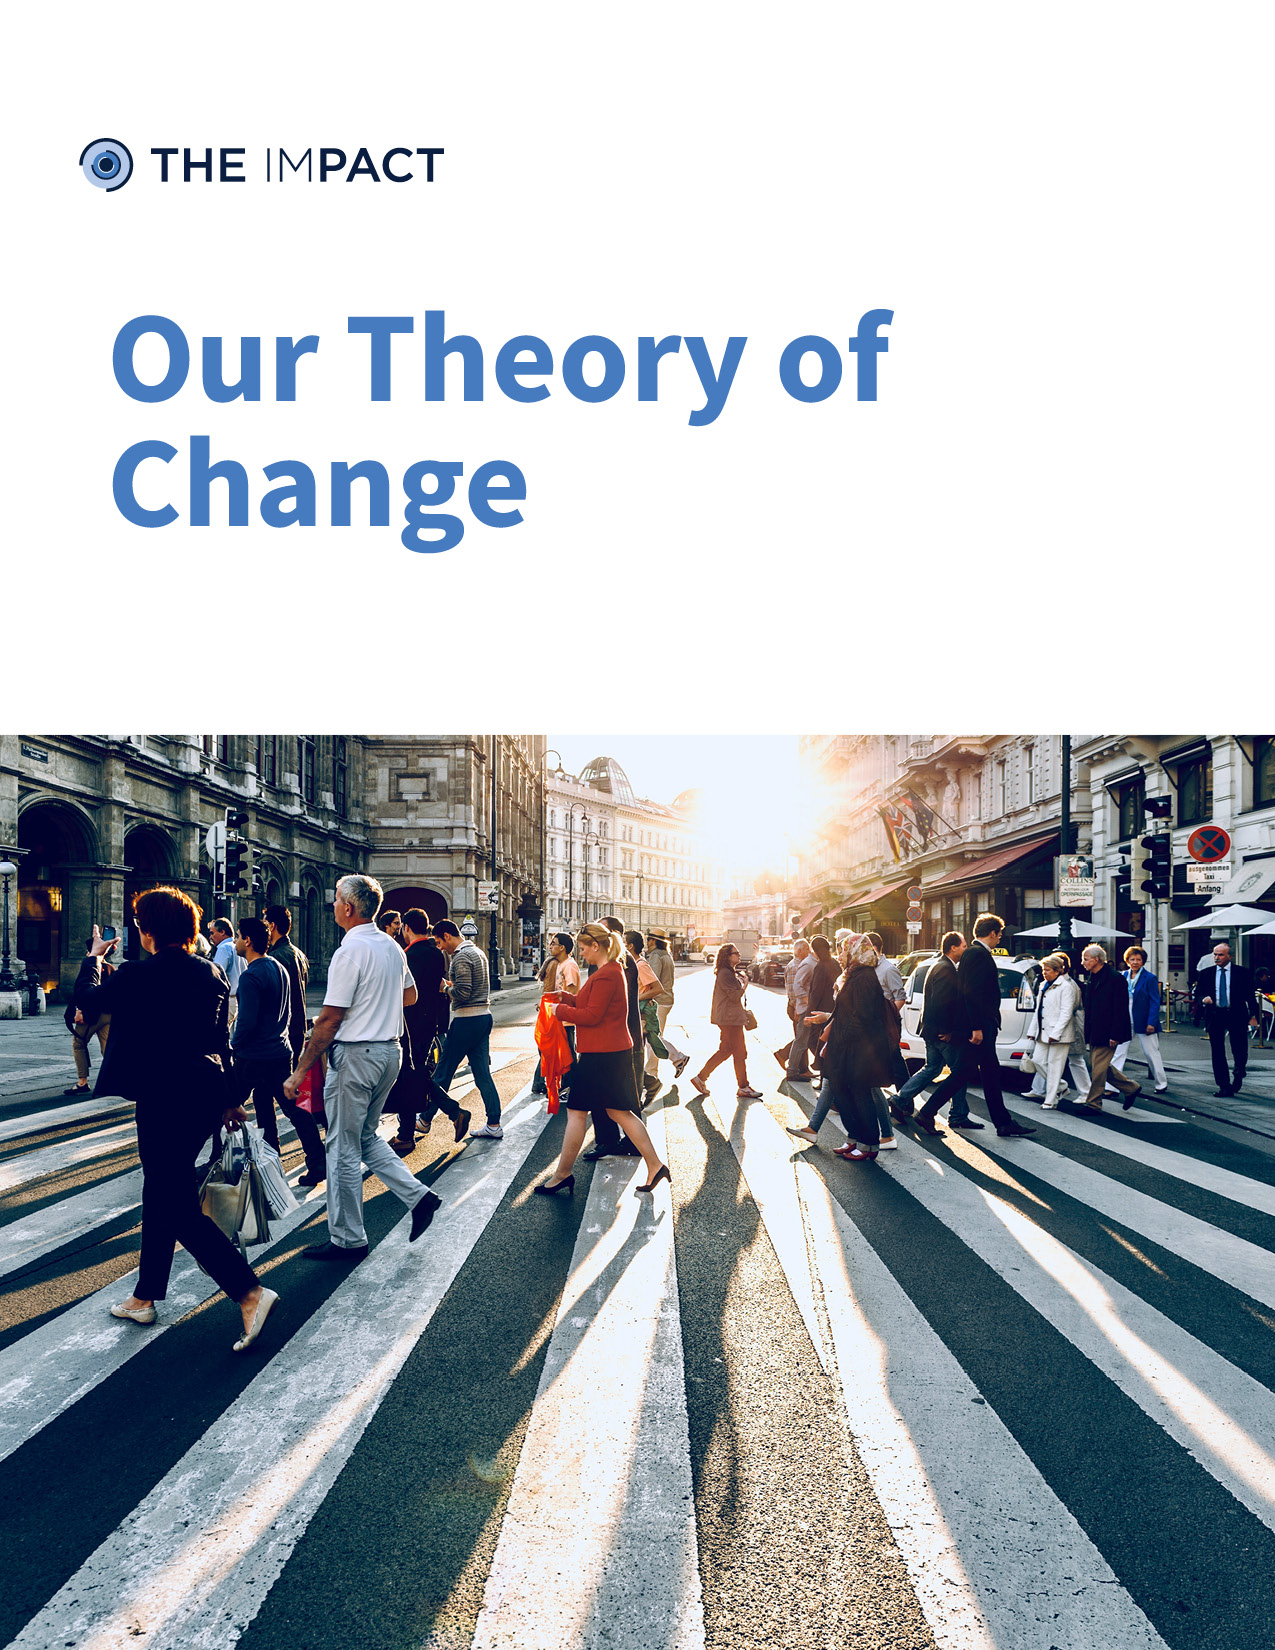 The ImPact Theory of Change